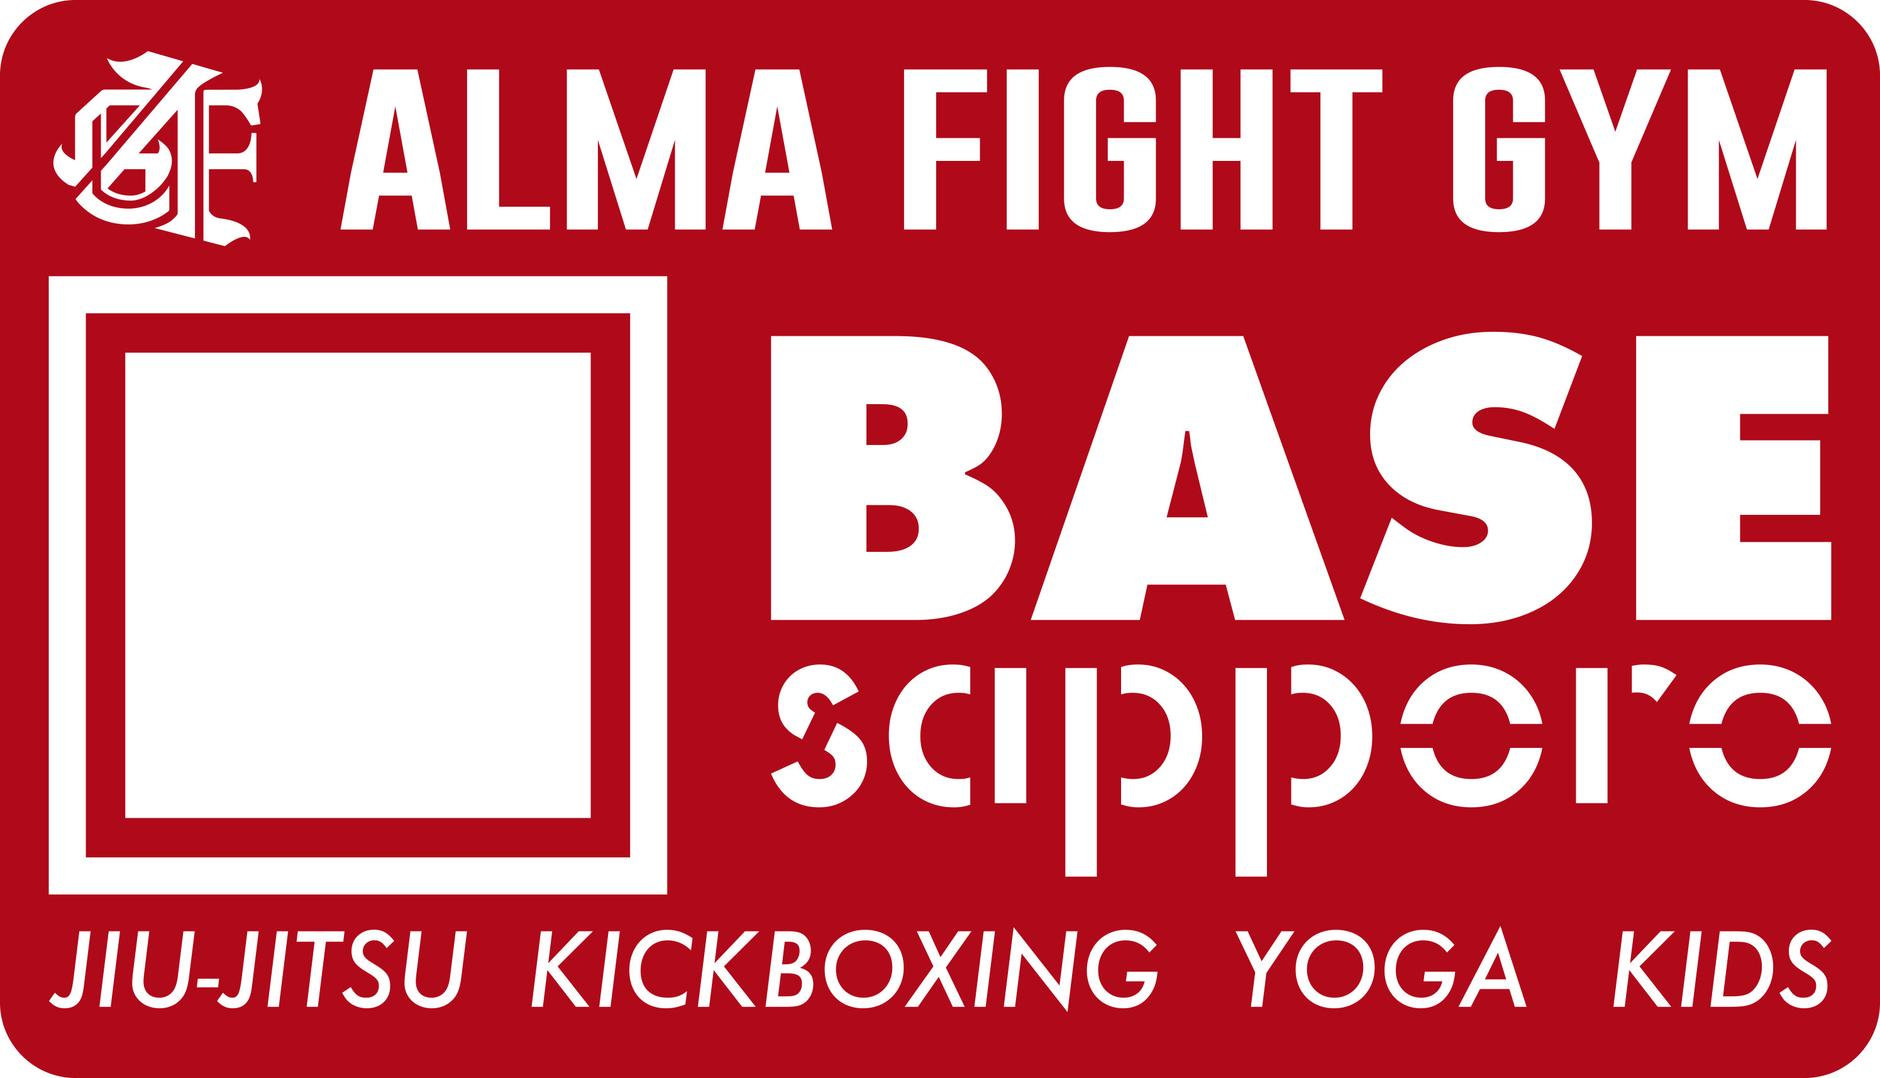 ALMA FIGHT GYM BASE STORE